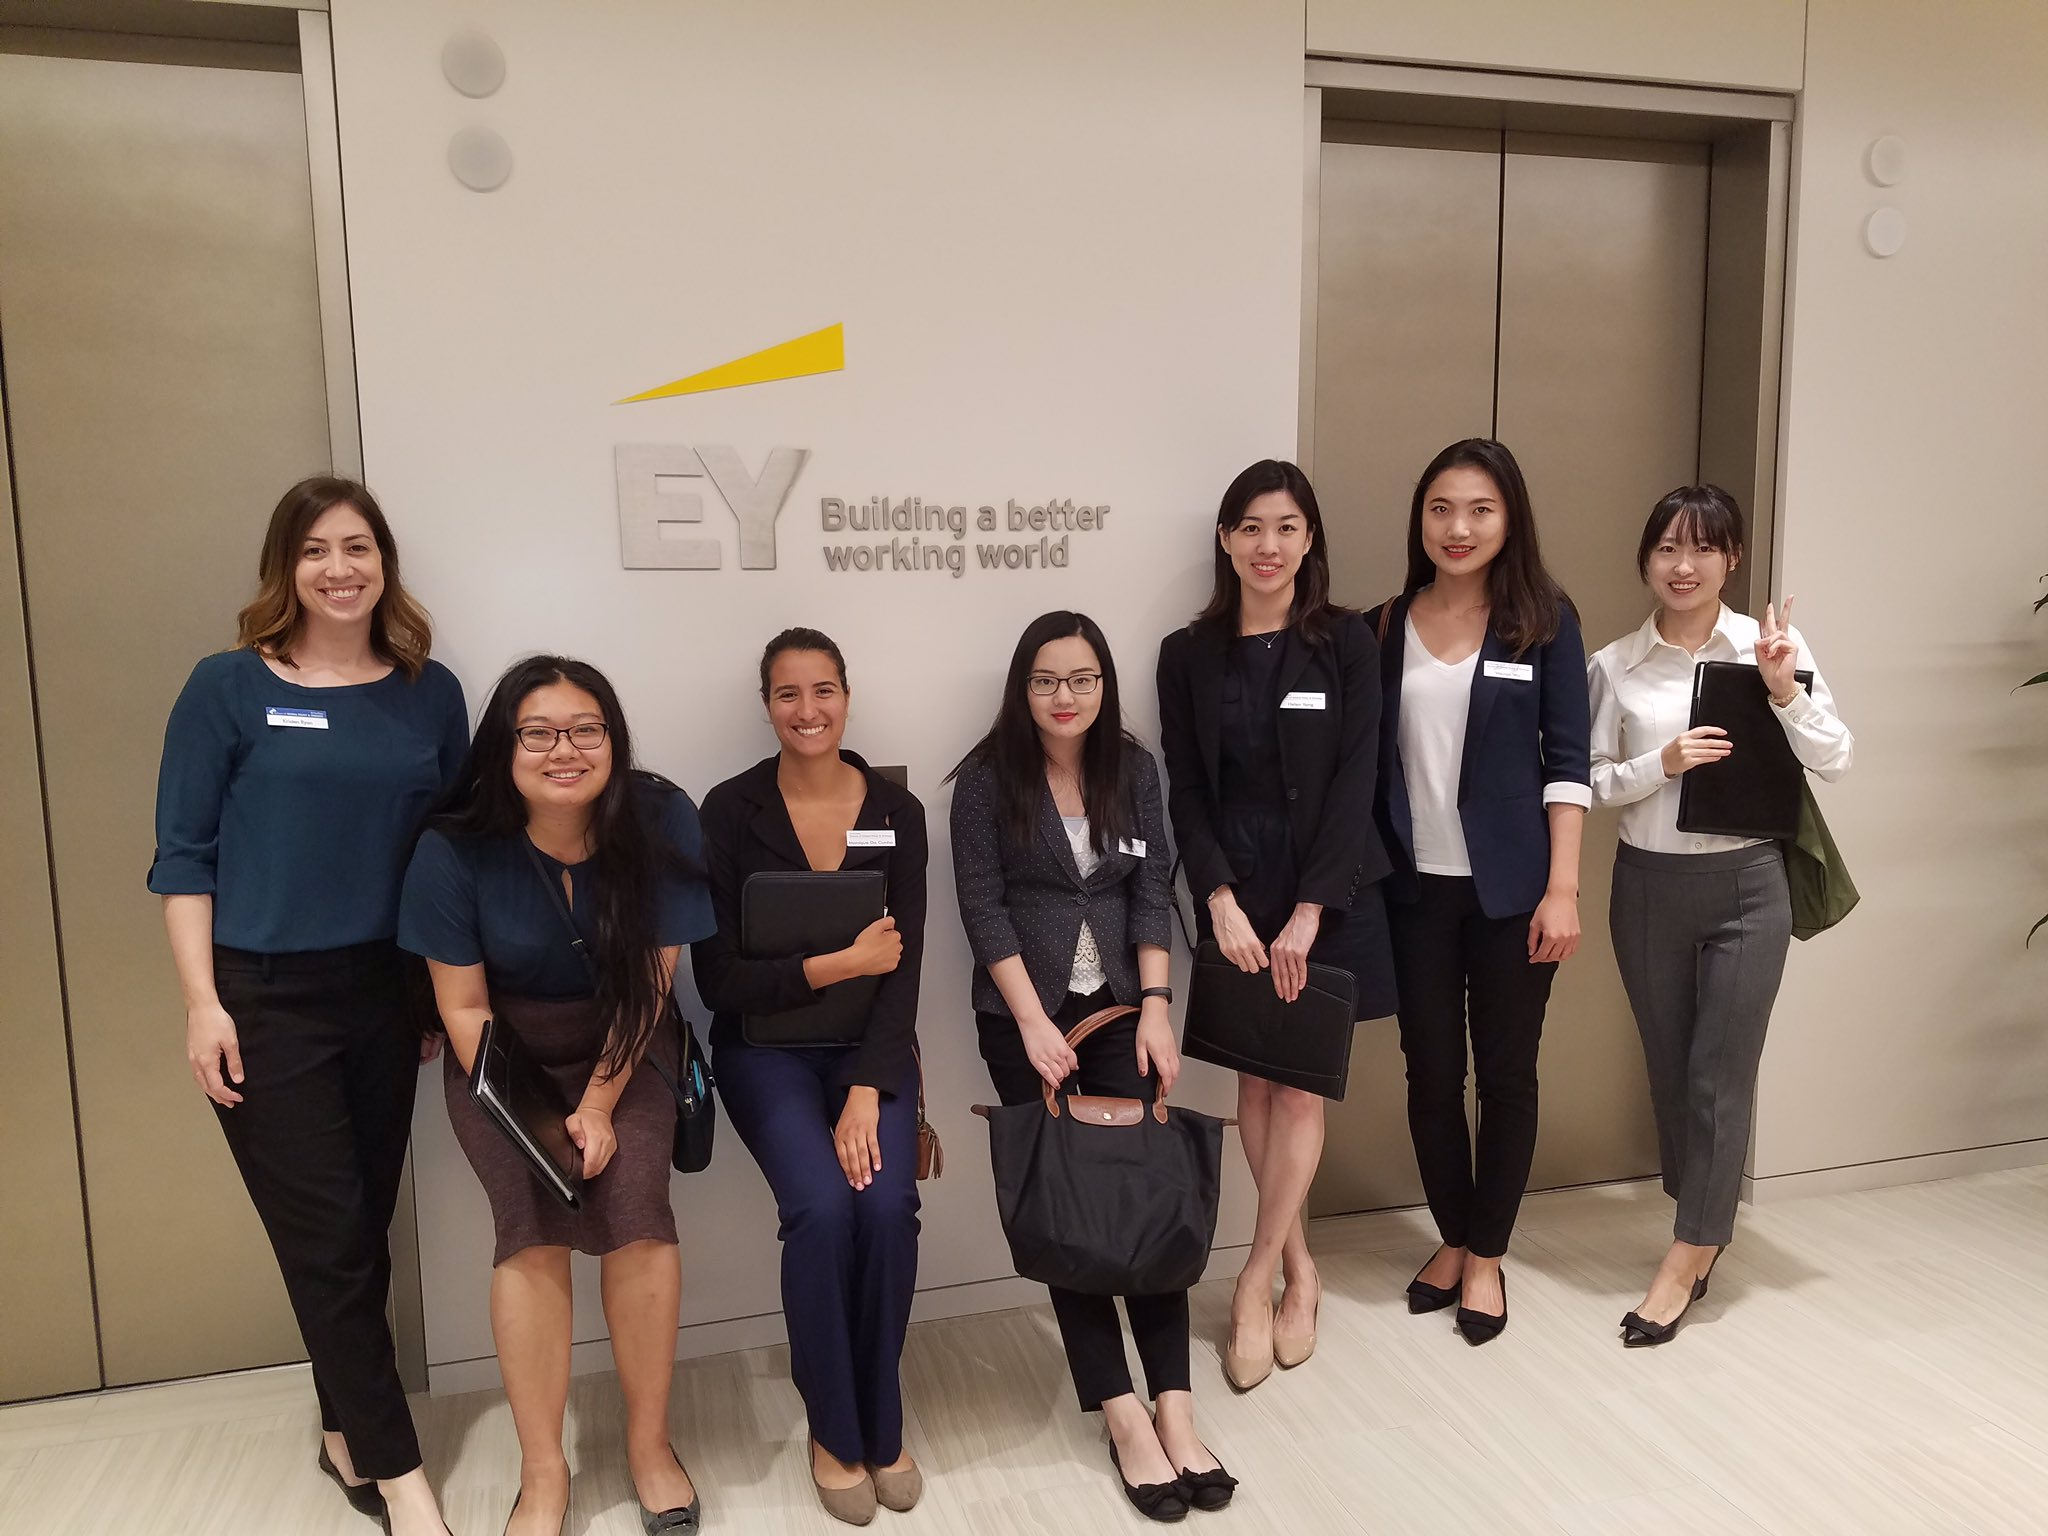 Enjoying our stop at @EYnews in #LosAngeles! https://t.co/HuIcTCLnYW